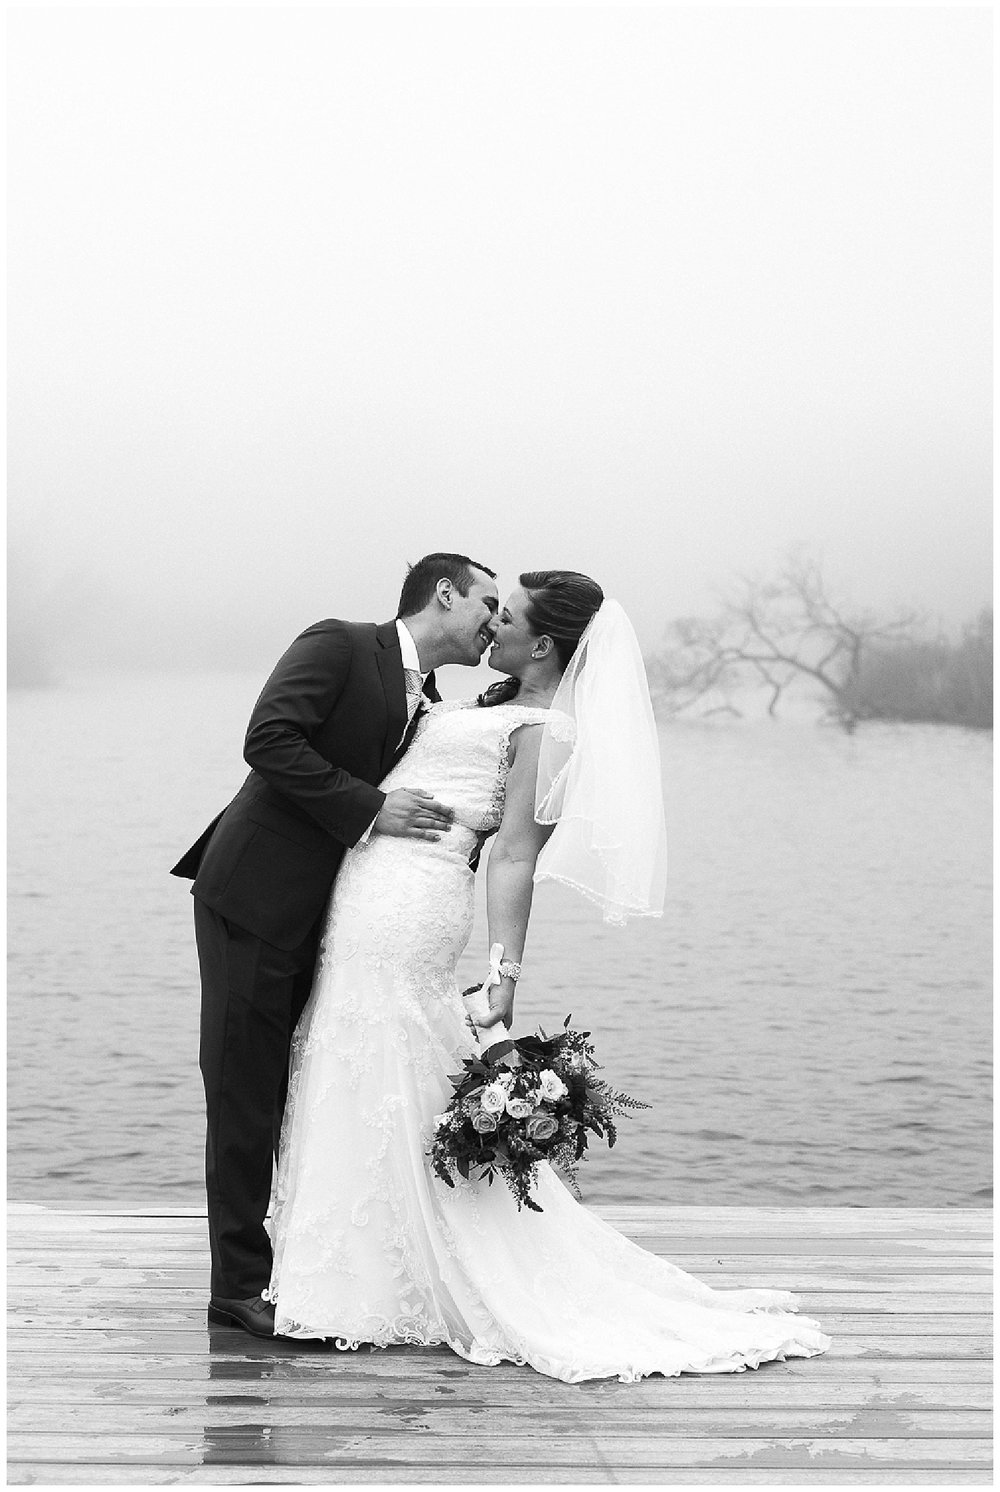 New Jersey Weddings | Sparta Weddings | Rock Island Lake Club Wedding | www.redoakweddings.com